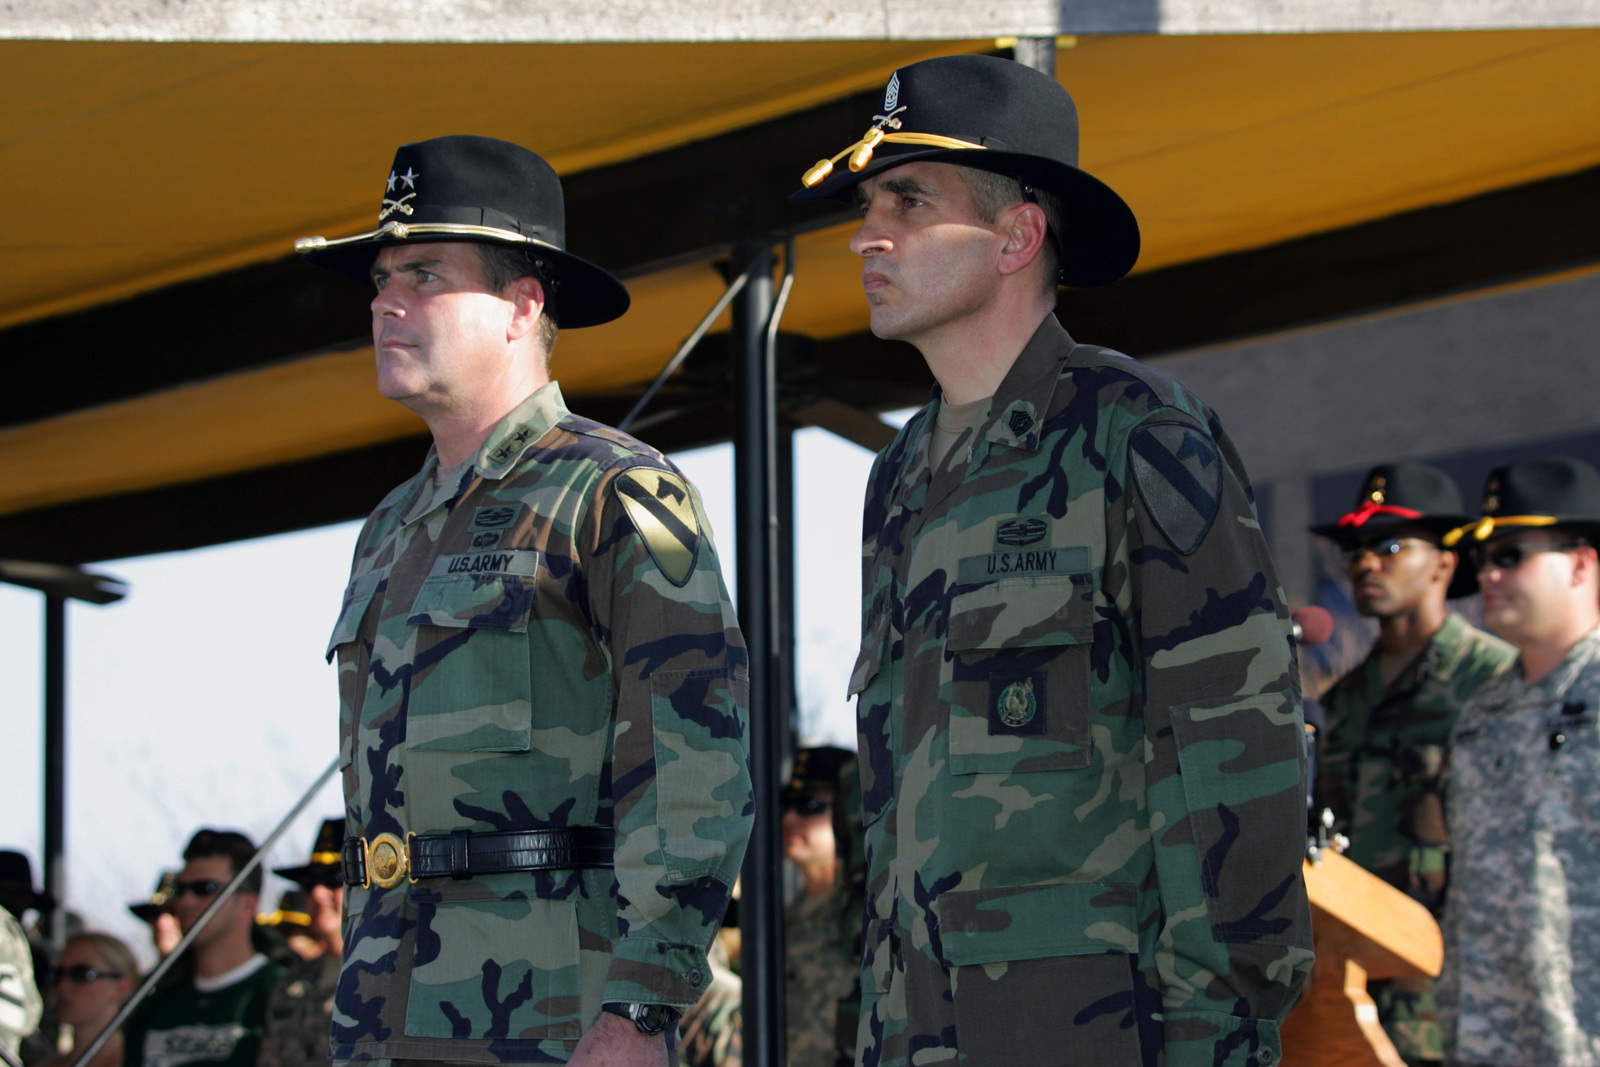 U S  Army Command SGT  MAJ  Philip F  Johndrow (right